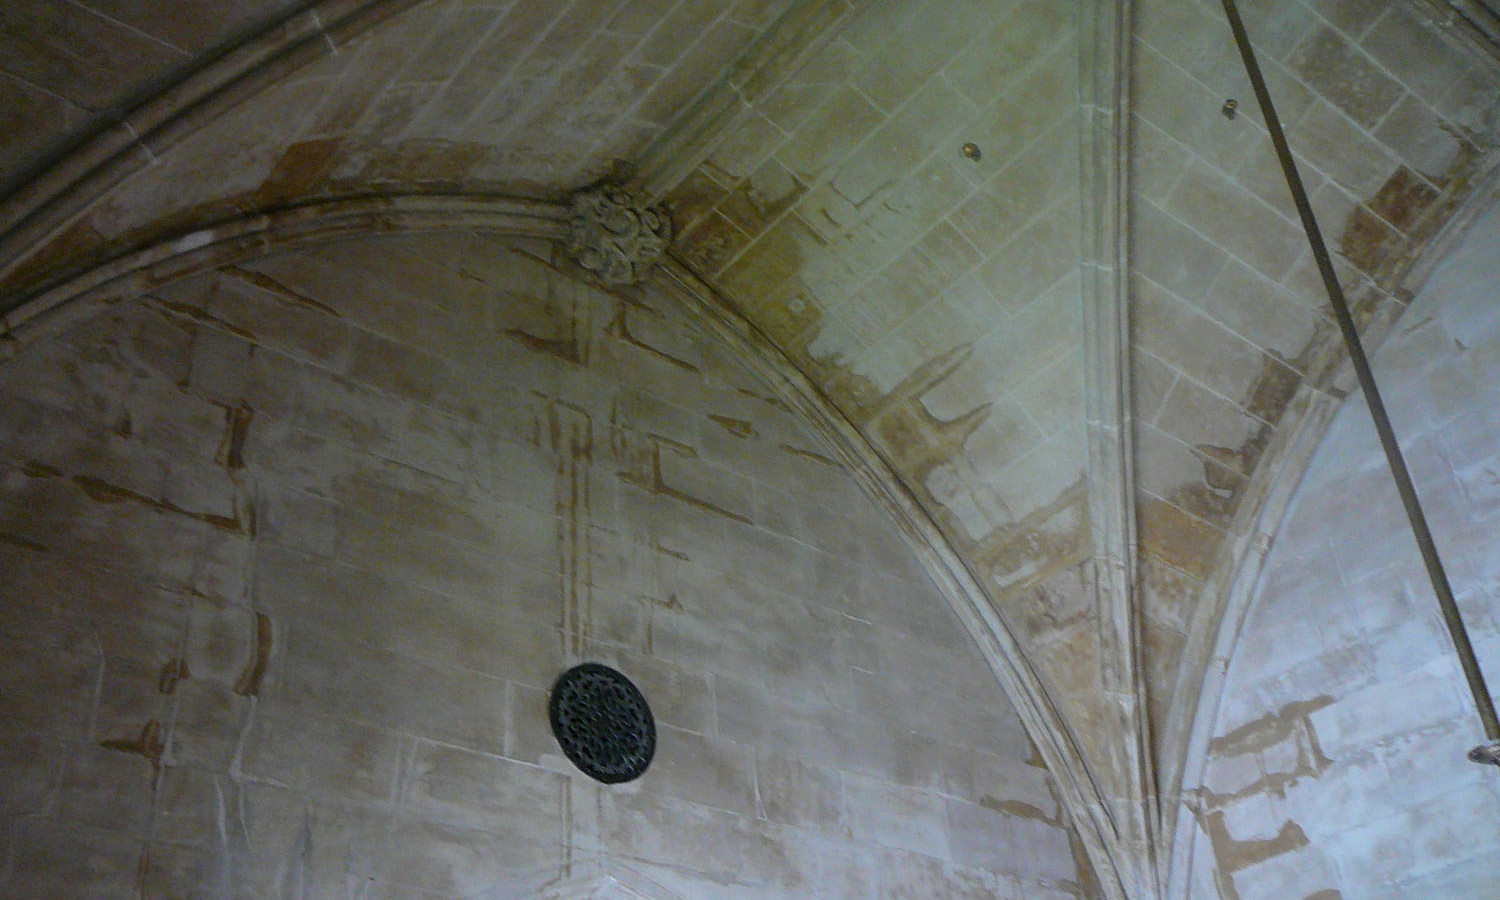 Interior Tower Ceiling with evidence of water infiltration